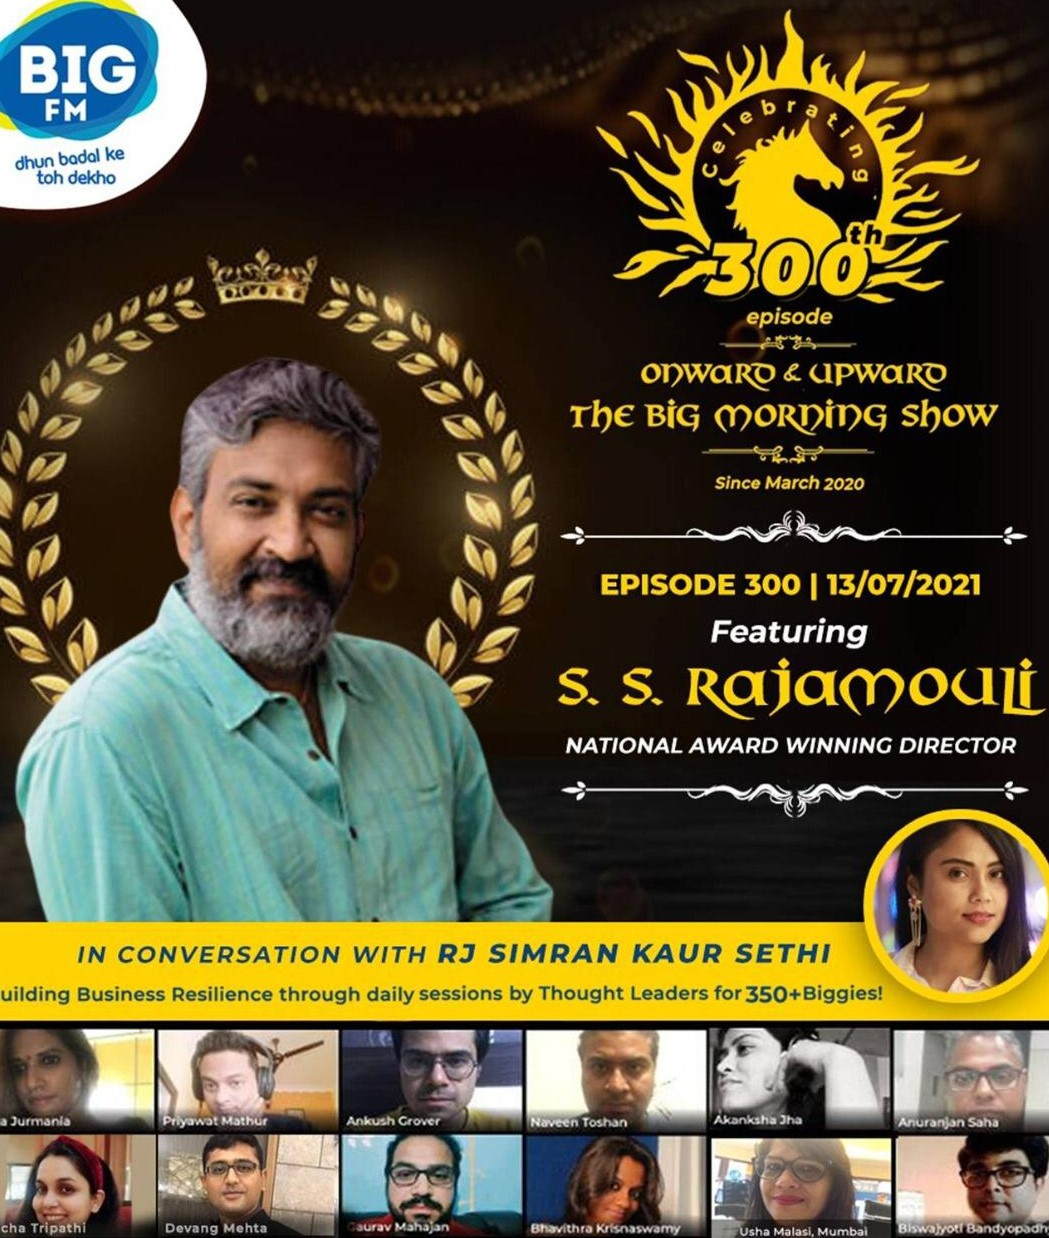 BIG FM's 'Onward & Upward - The BIG Morning Show' reaches the landmark of 300 episodes celebrates with ace filmmaker S.S. Rajamouli as guest speaker!